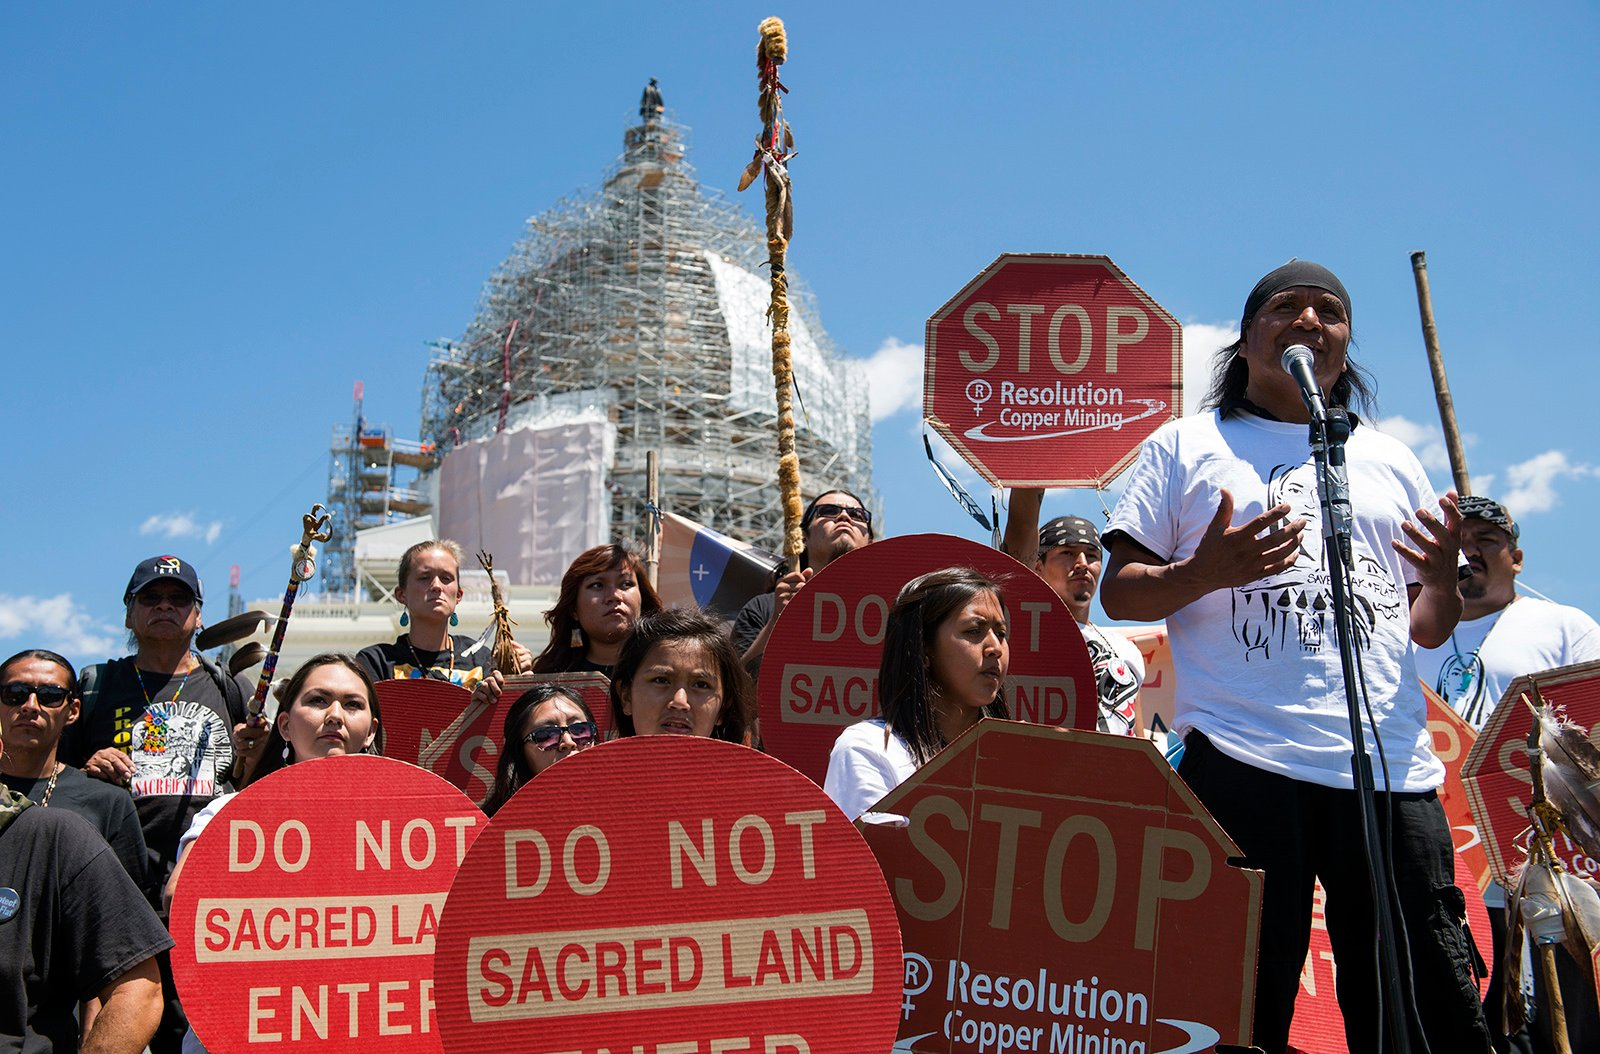 religionnews.com - Emily McFarlan Miller - Native American group files motion to stop mining at sacred Oak Flat site